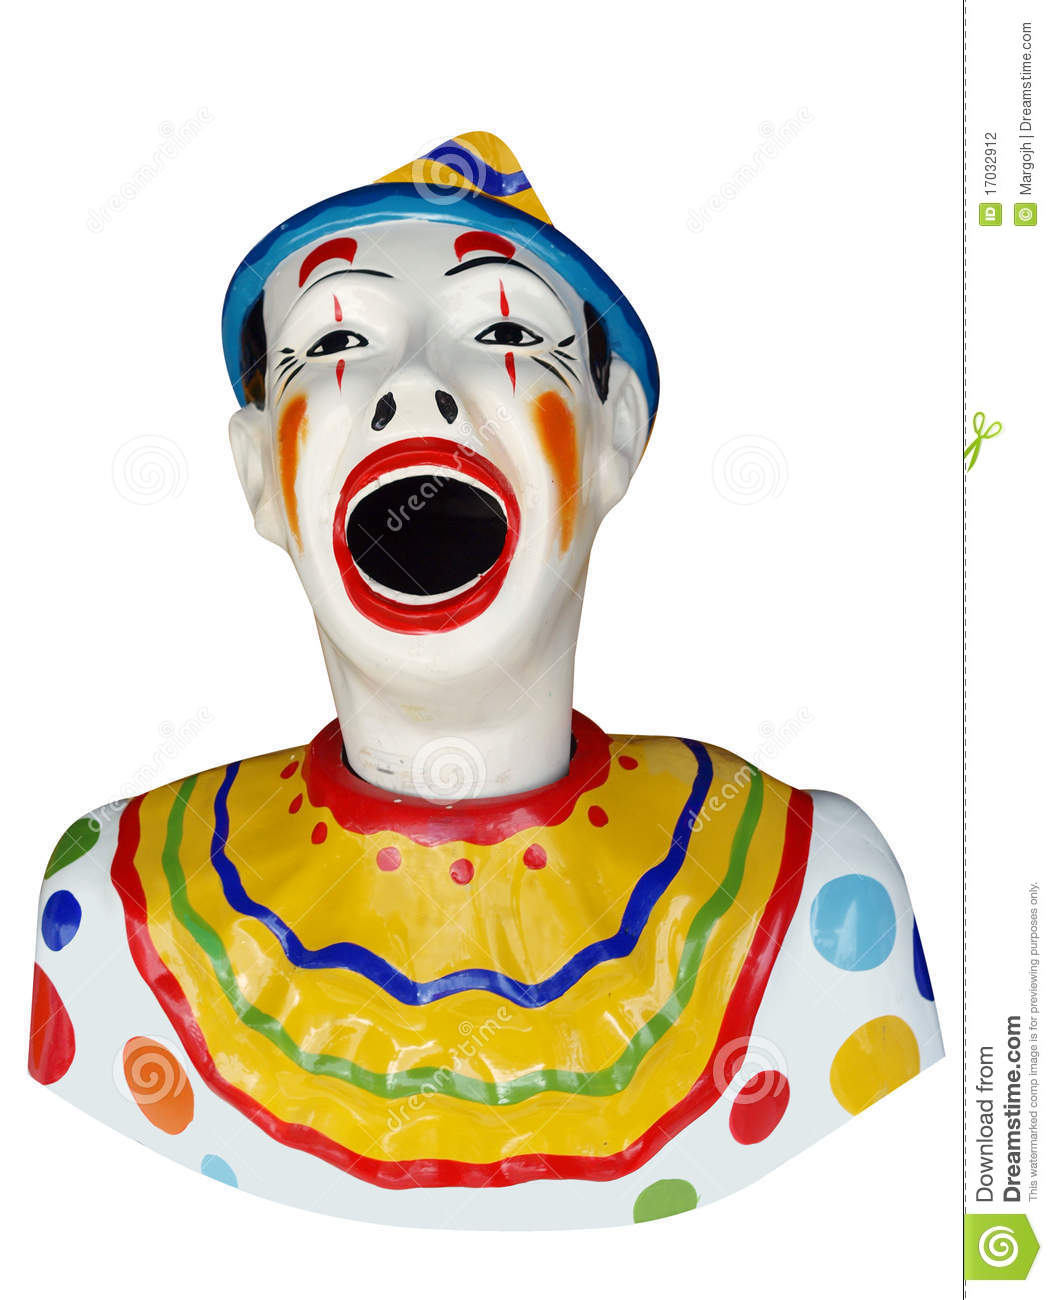 Carnival Feed The Clown Figure Stock Photography.